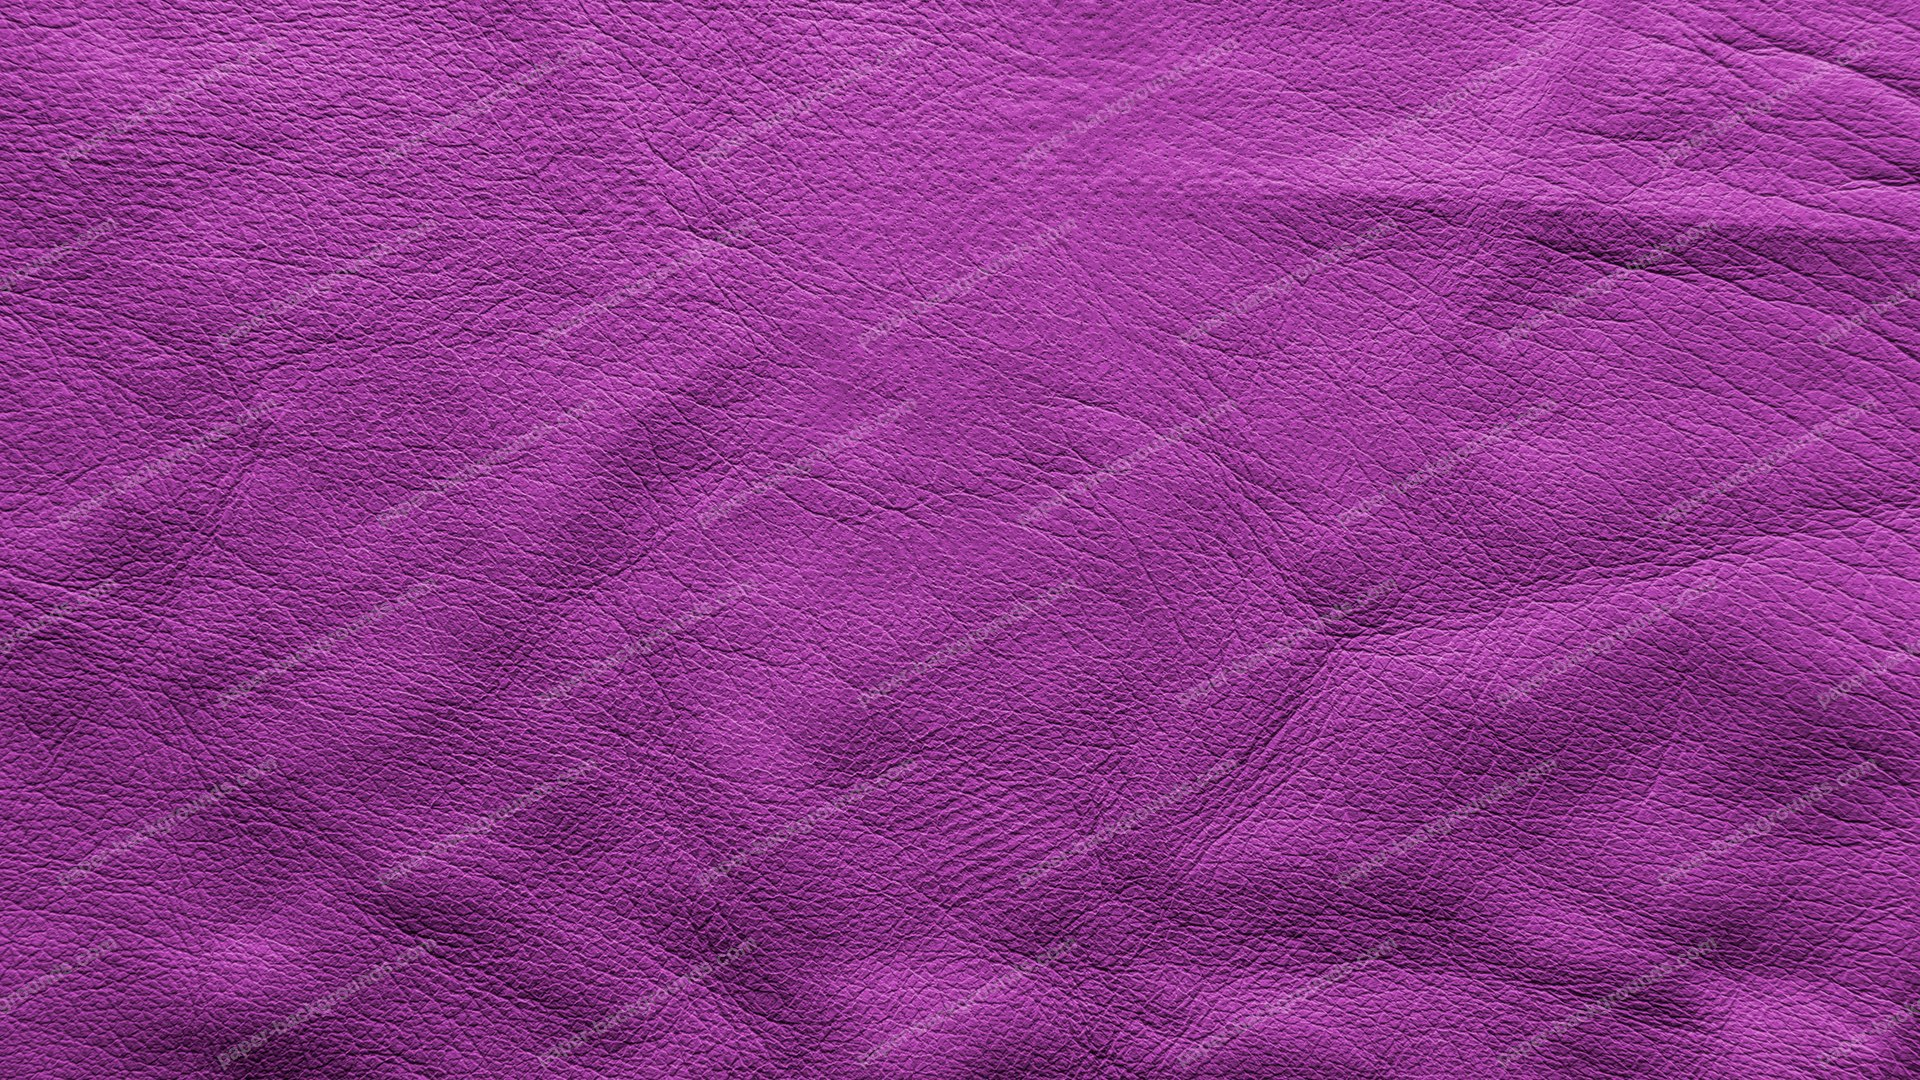 lavender vintage background - photo #13